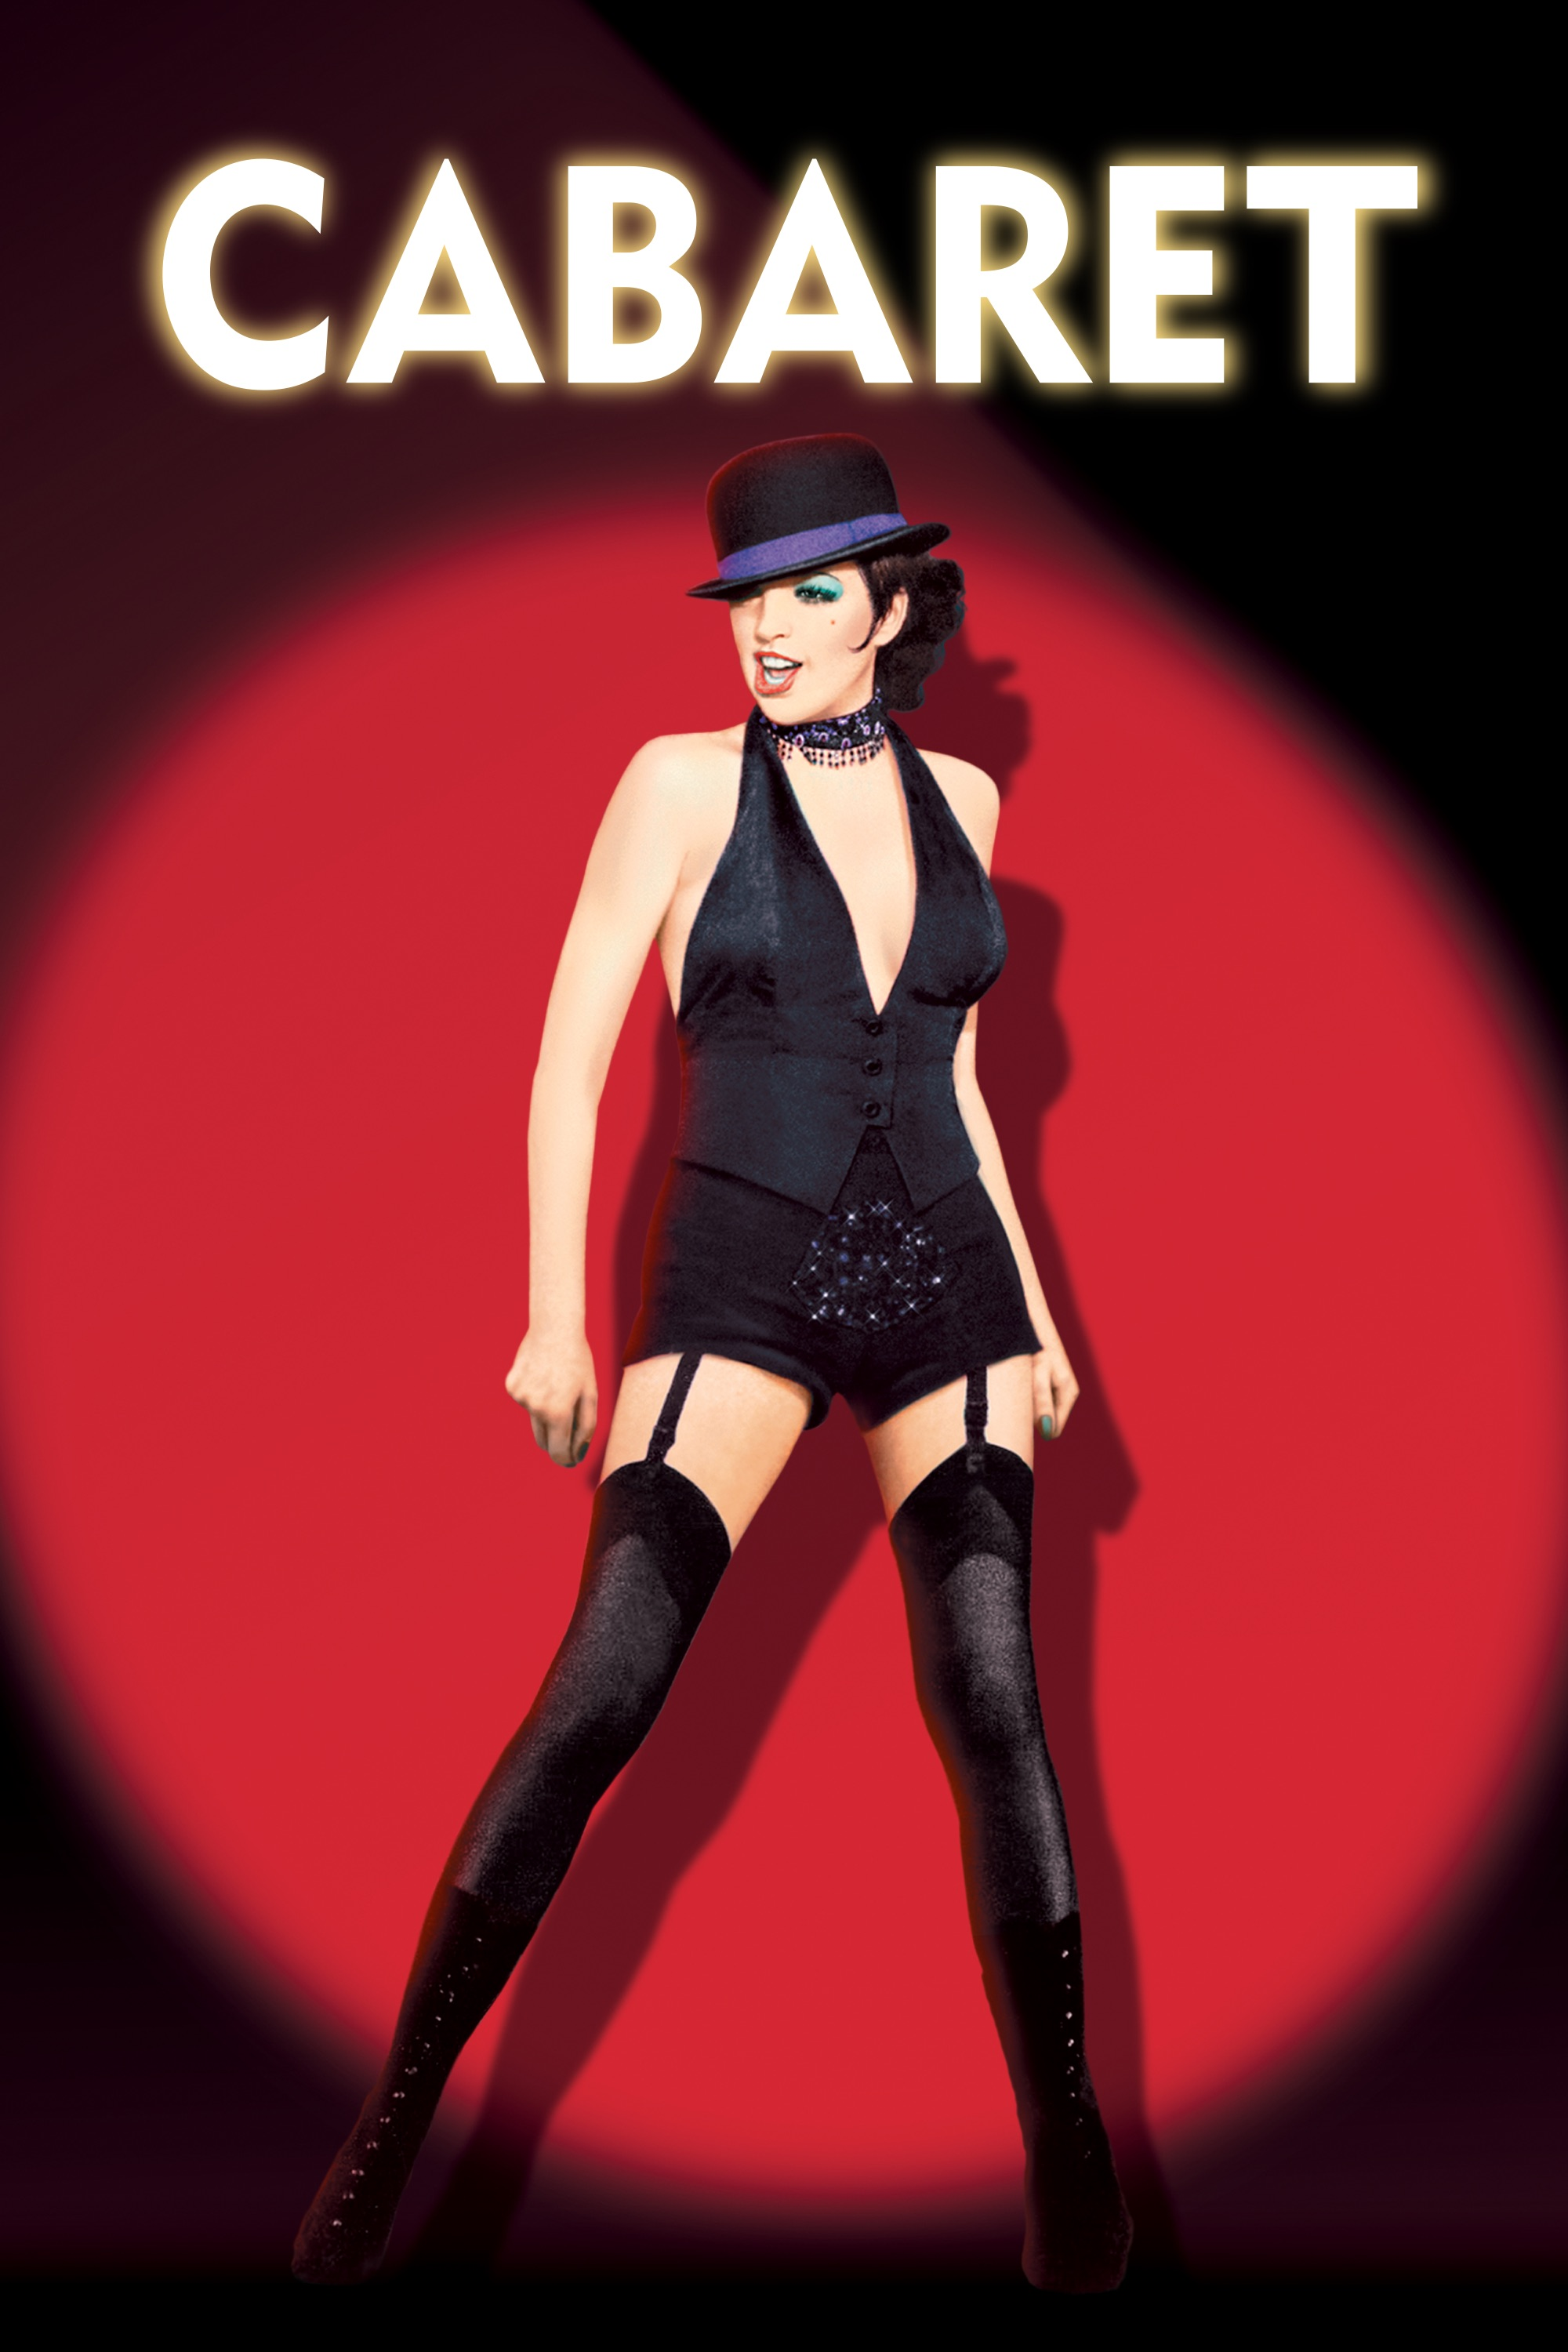 cabaret bob fosse essay Bob fosse and sexuality in cabaret  fosse's experience with vaudeville cabaret fosse used the changing environment of america in the 1970s to create a new form of dance that mirrored the evolving world around him, ultimately transforming the face of the american musical.